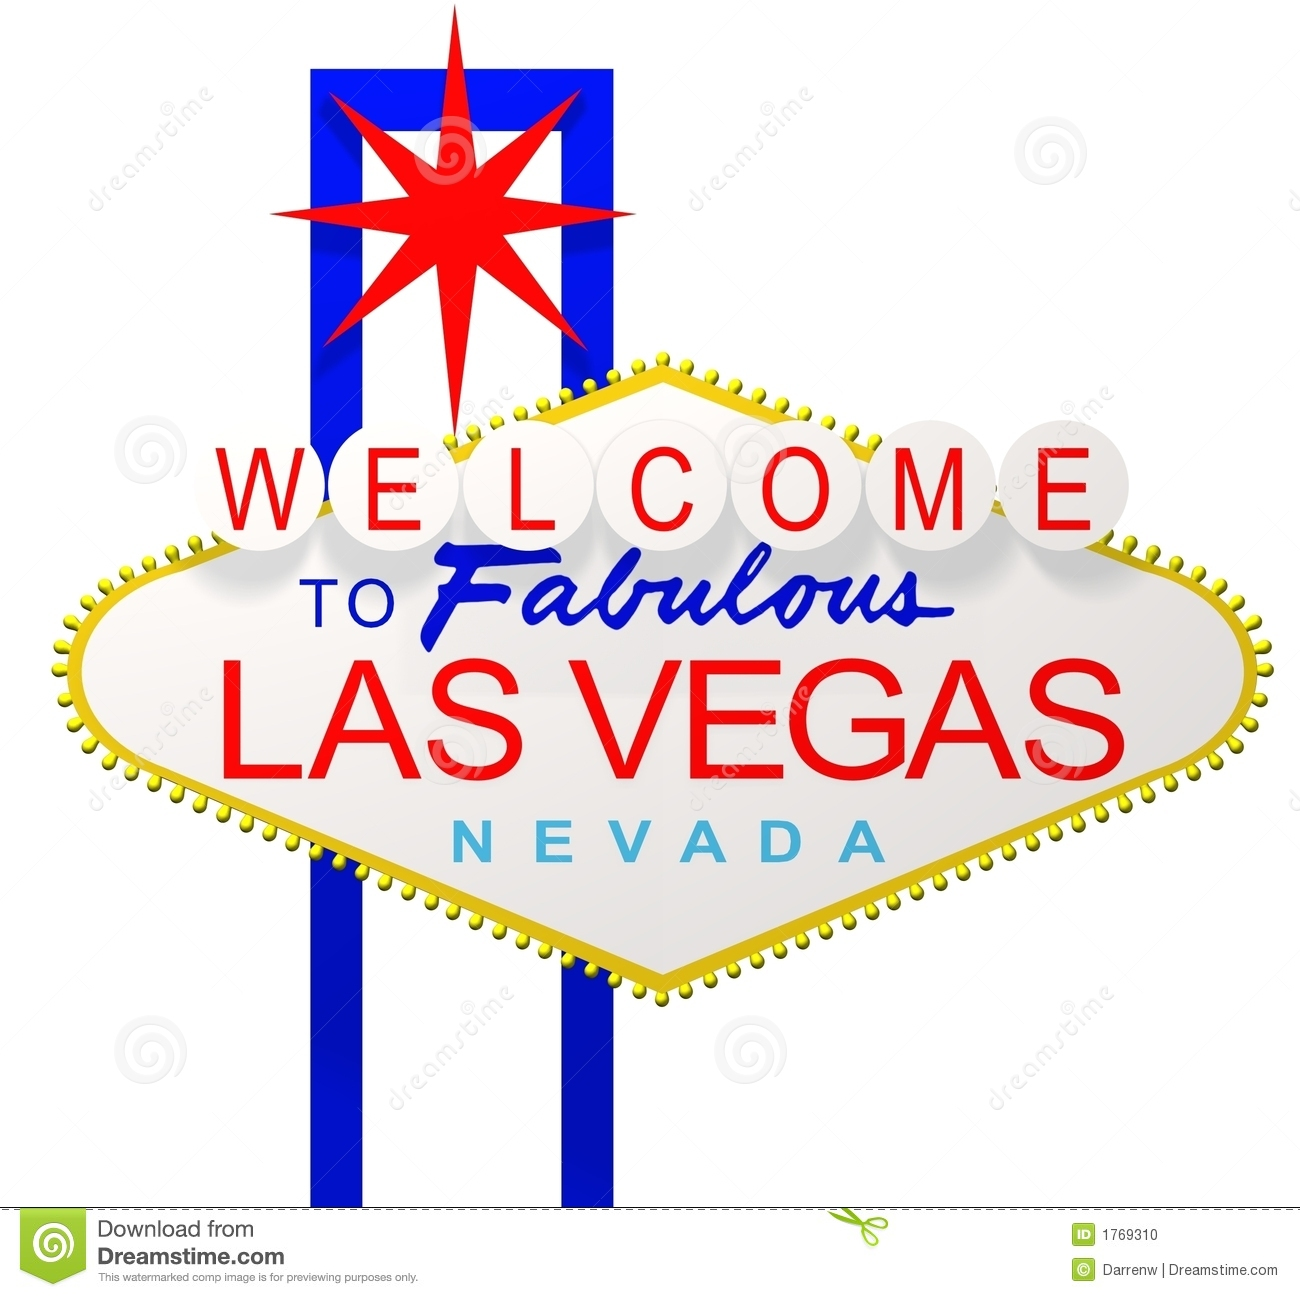 Welcome to Vegas Clip Art.